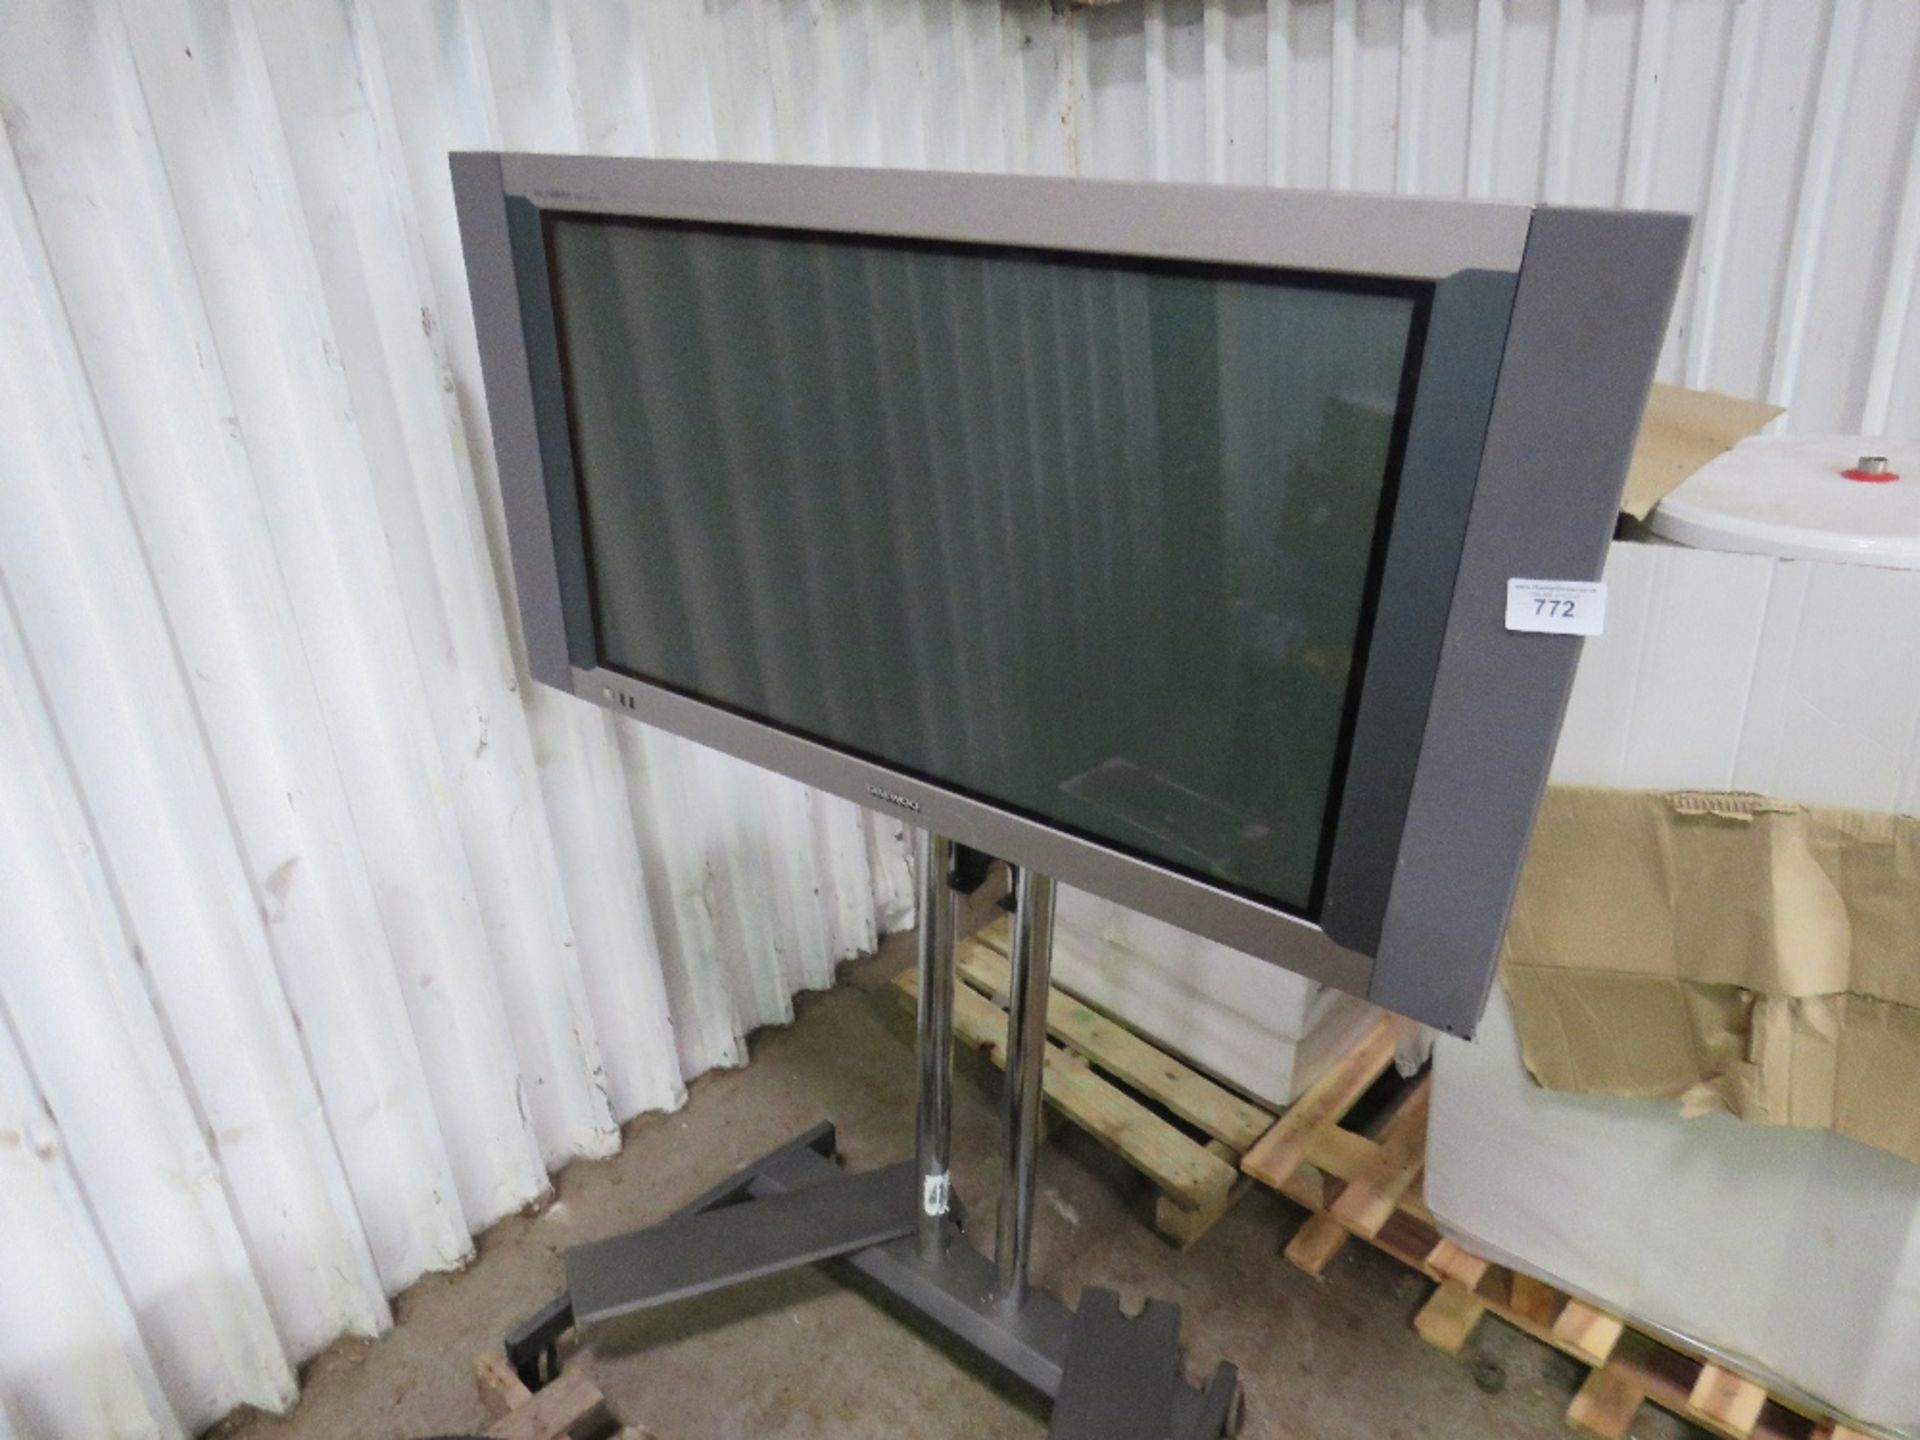 Lot 772 - DAEWOO PLASMA SCREEN ON STAND...UNTESTED..CONDITION UNKNOWN